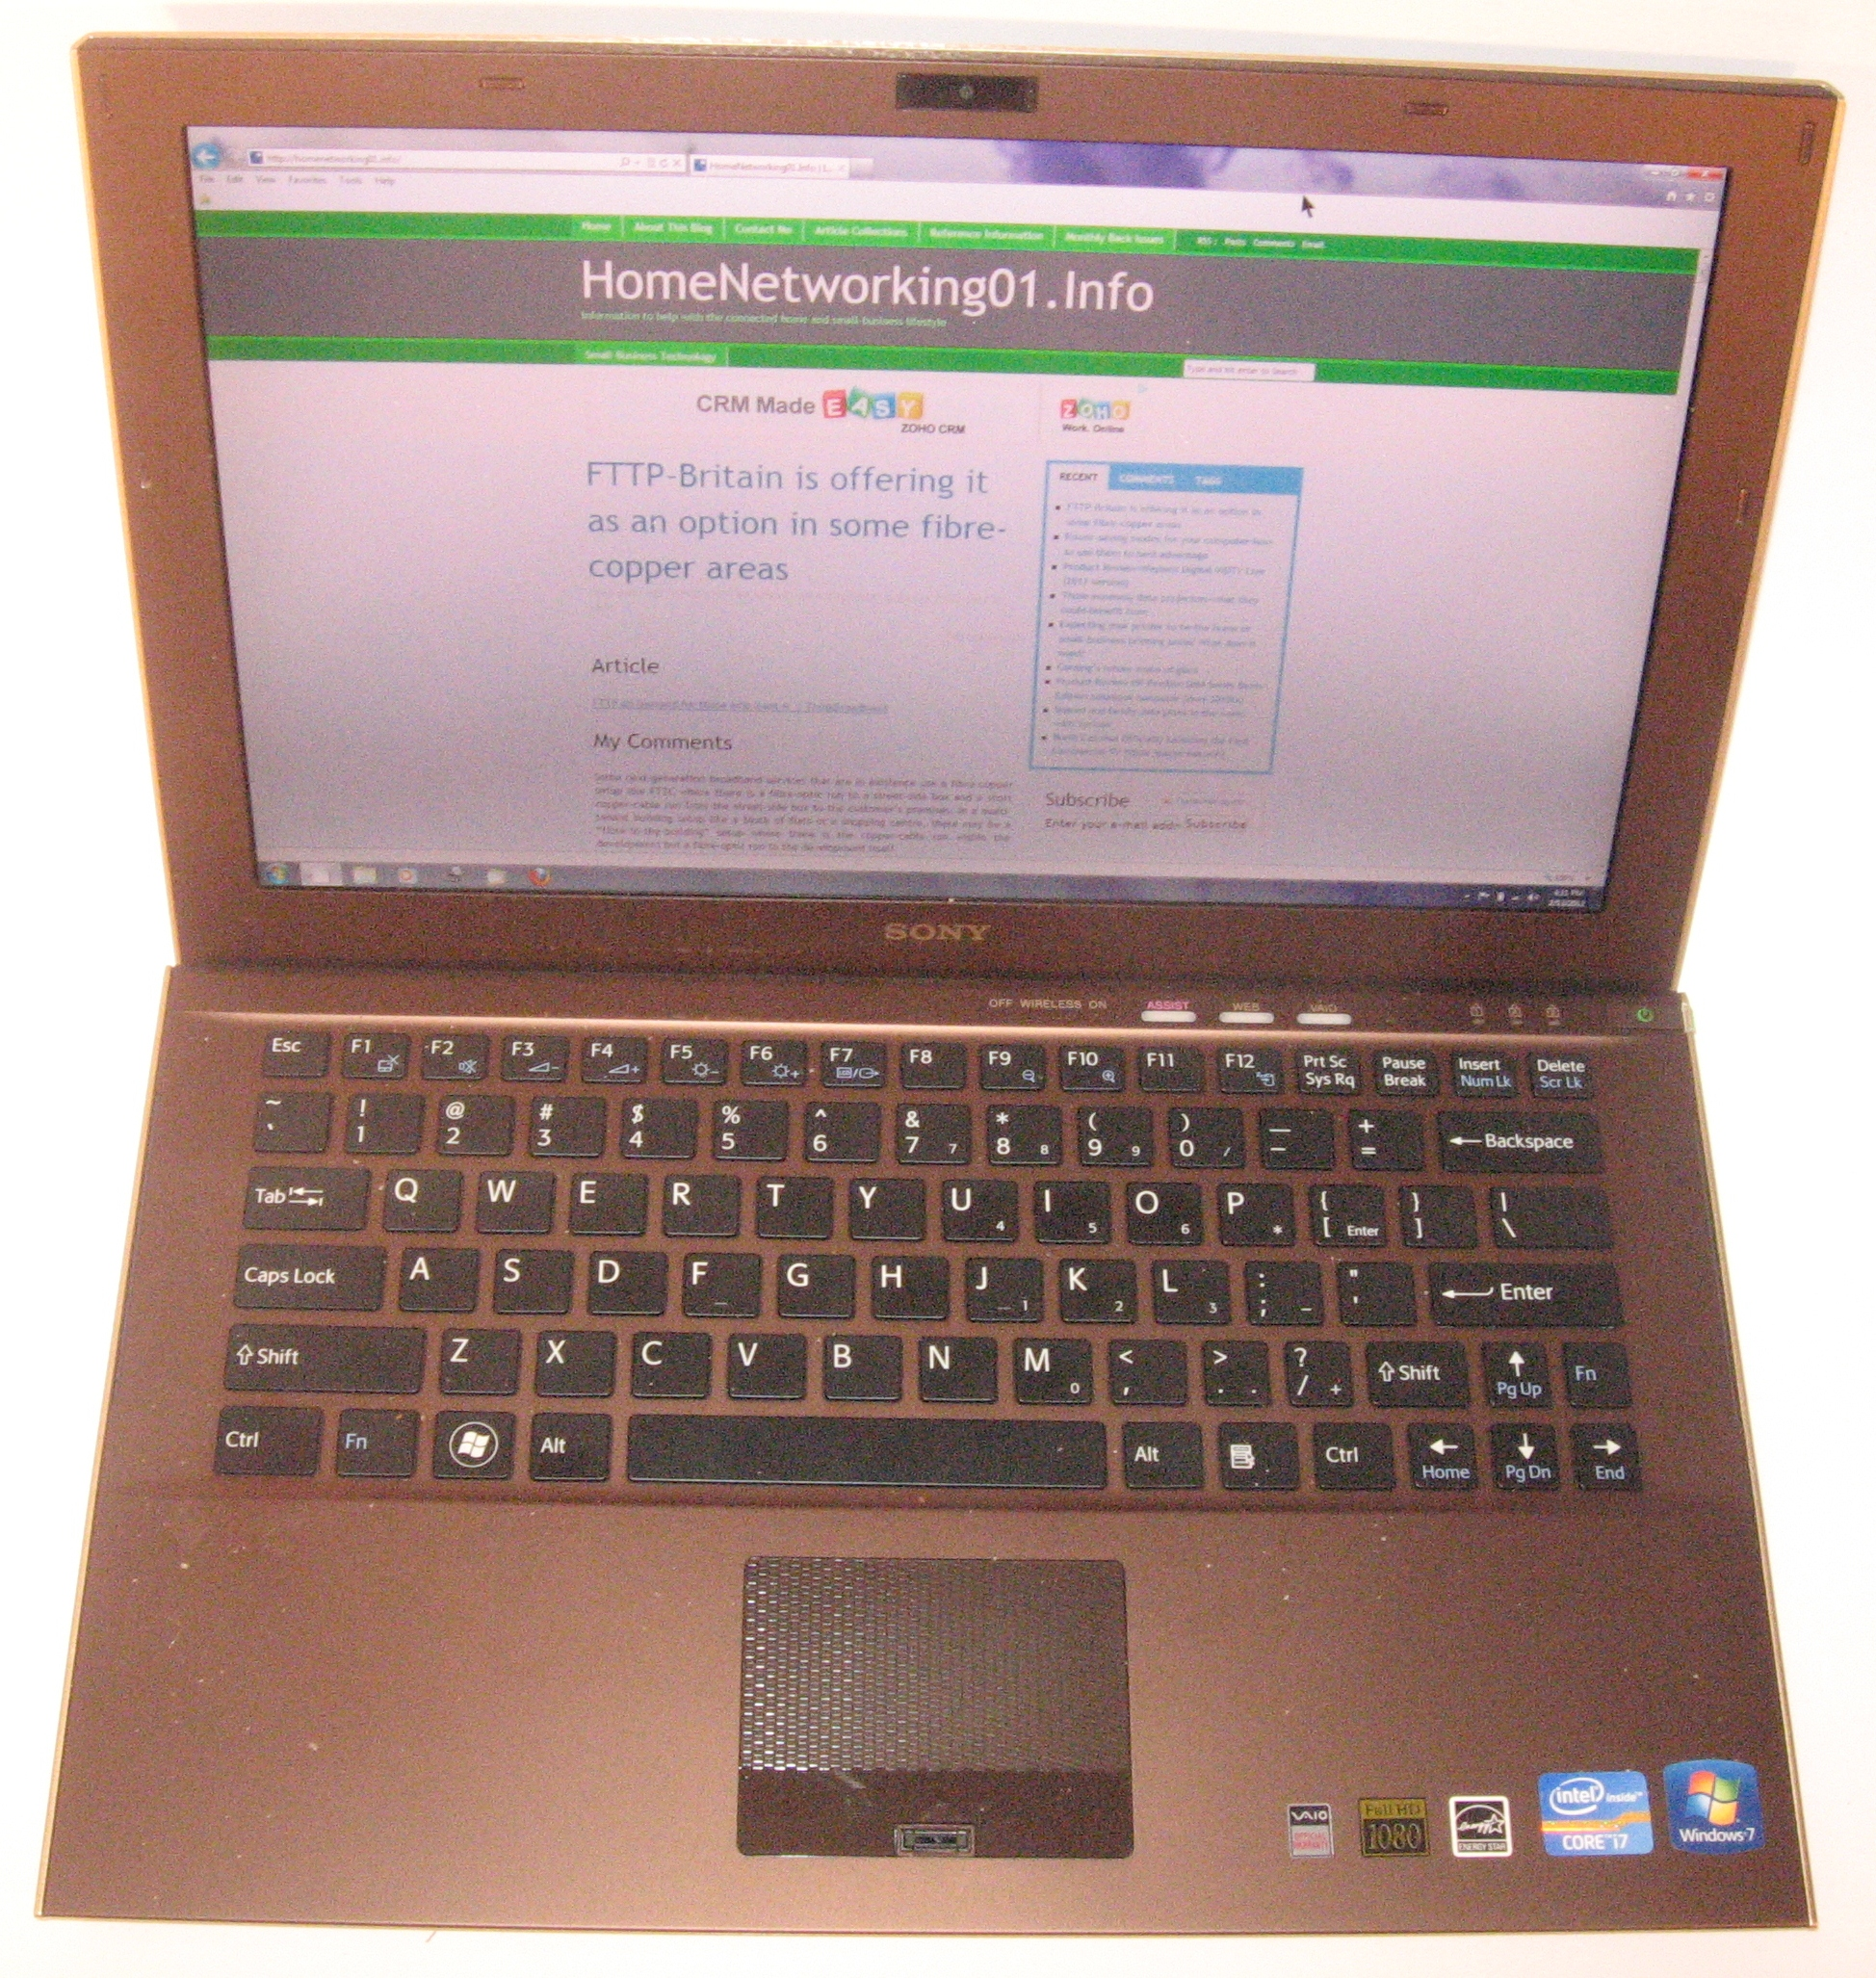 Sony VAIO Z Series ultraportable computer